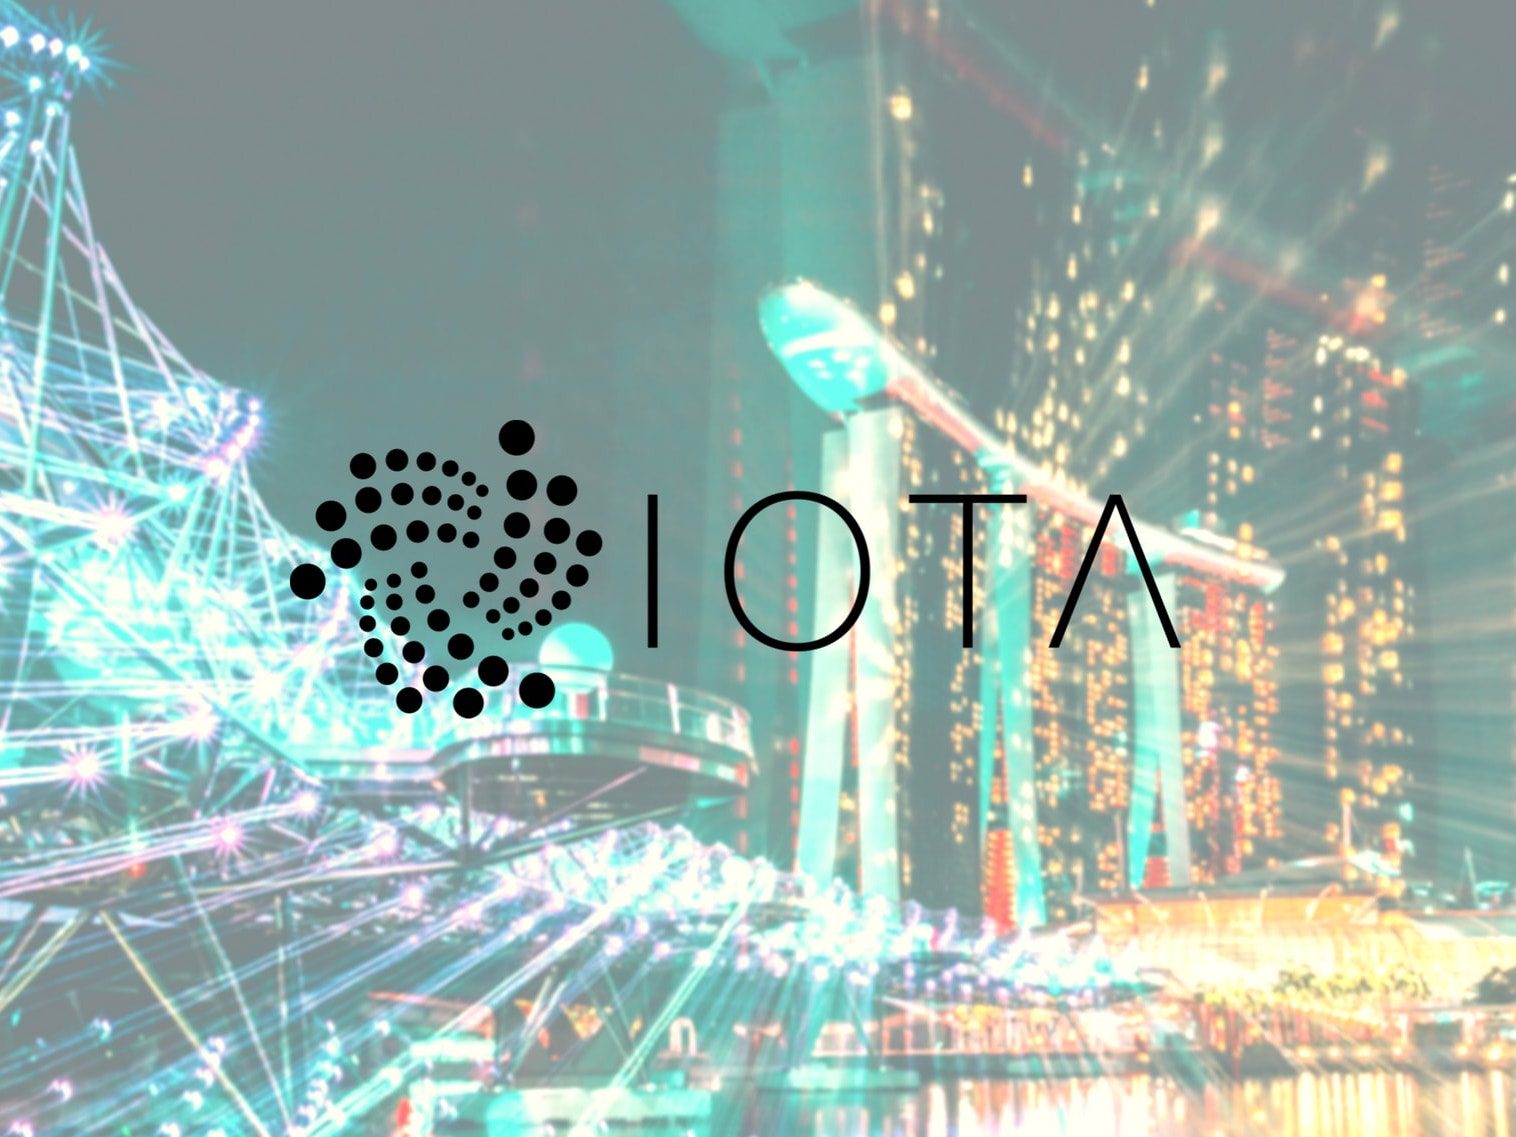 IOTA Analysis and Forecast (Mon, Sept 24th, 2018): hidden bearish divergence